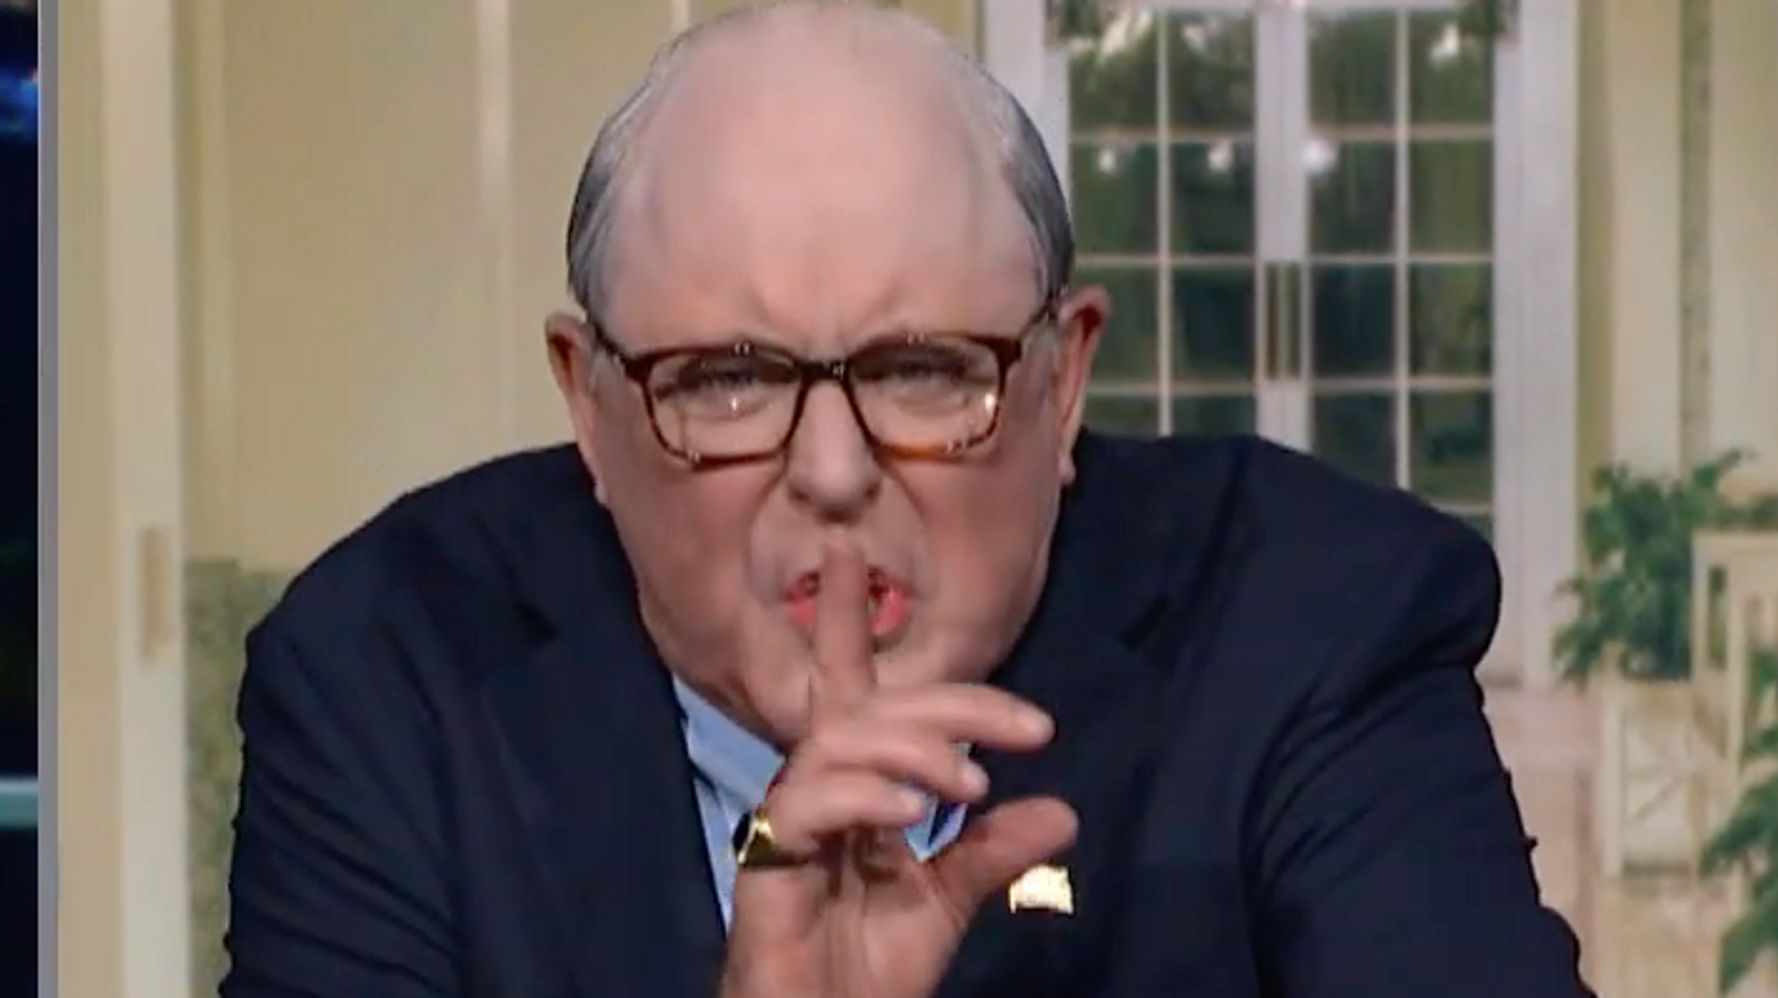 Westlake Legal Group 5db0077a210000ad1e34ac82 John Lithgow's Rudy Giuliani Impression Is Just Wild